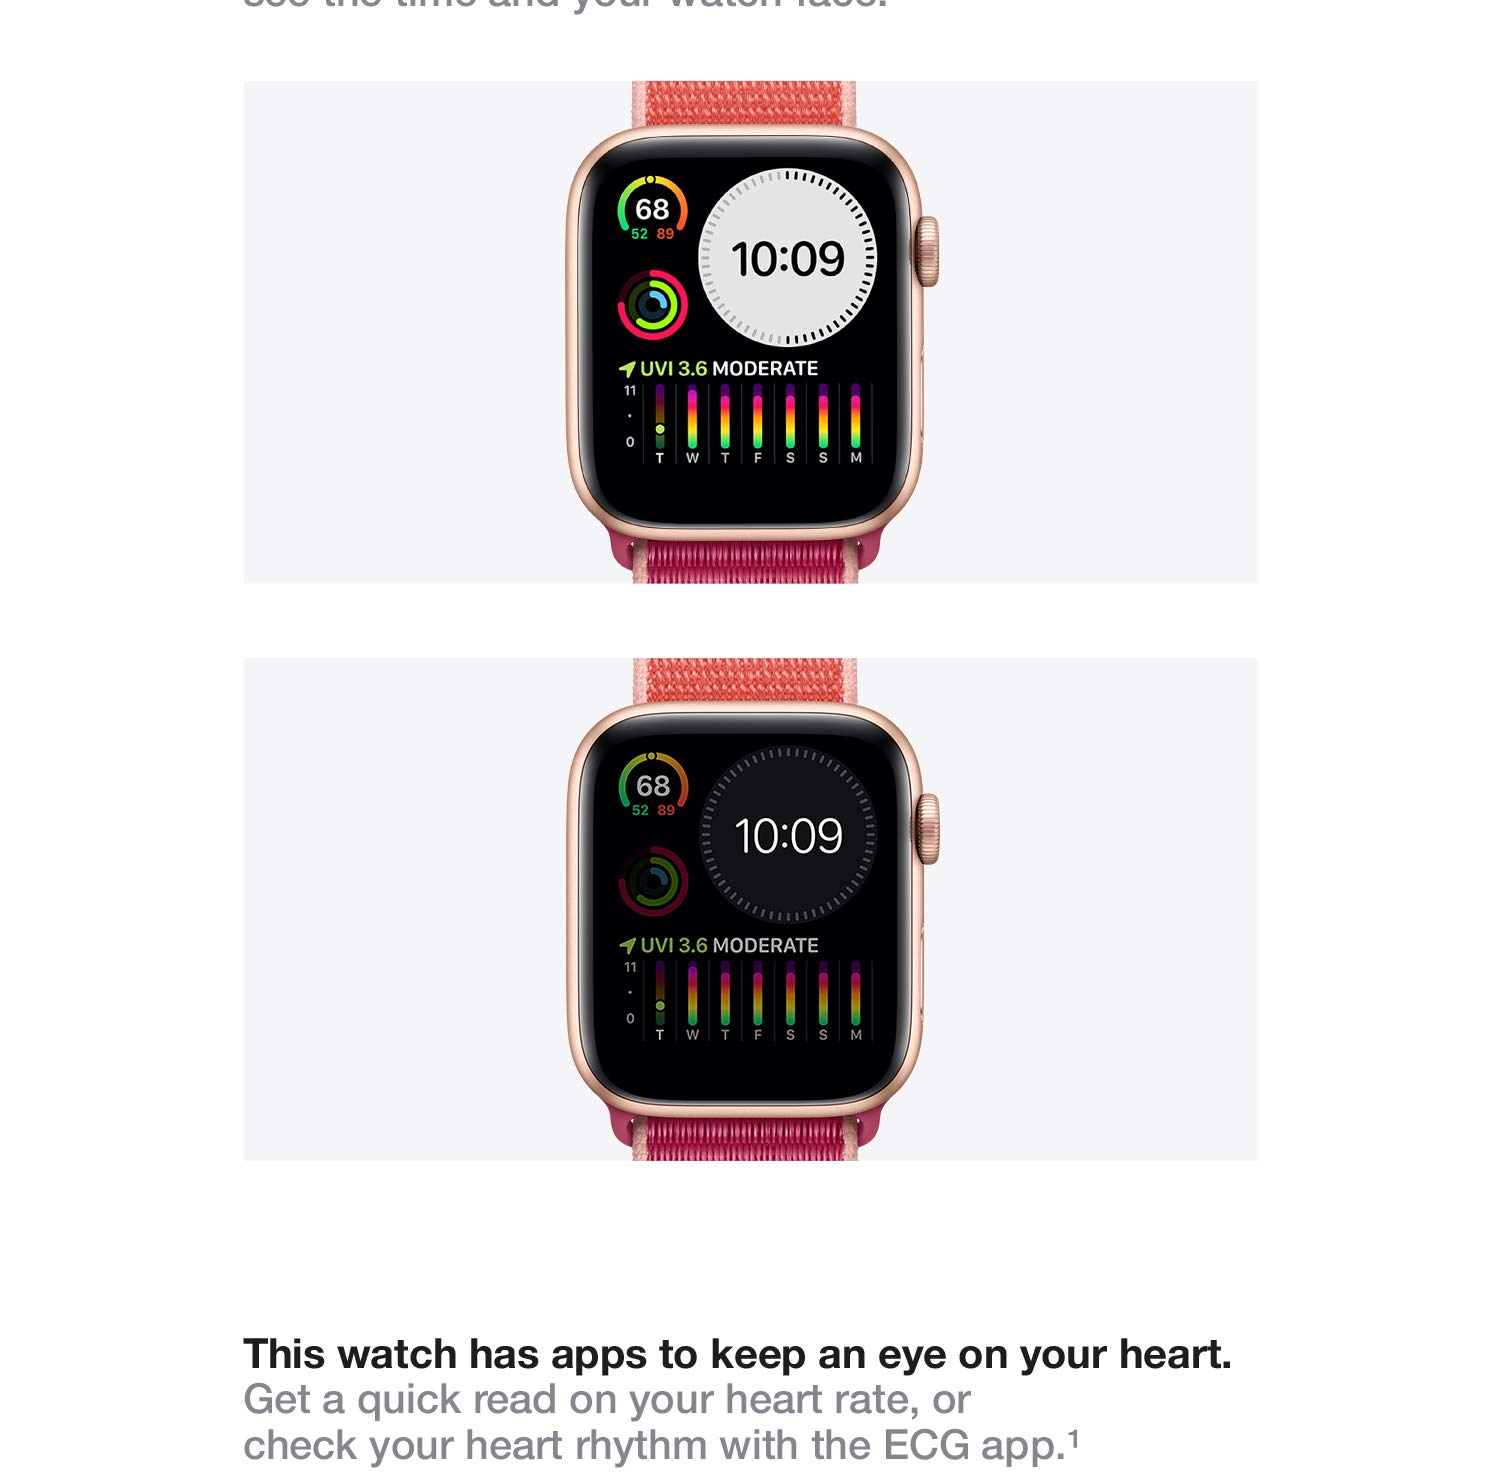 This watch has apps to keep an eye on your heart. Get a quick read on your heart rate, or check your heart rhythm with the ECG app.